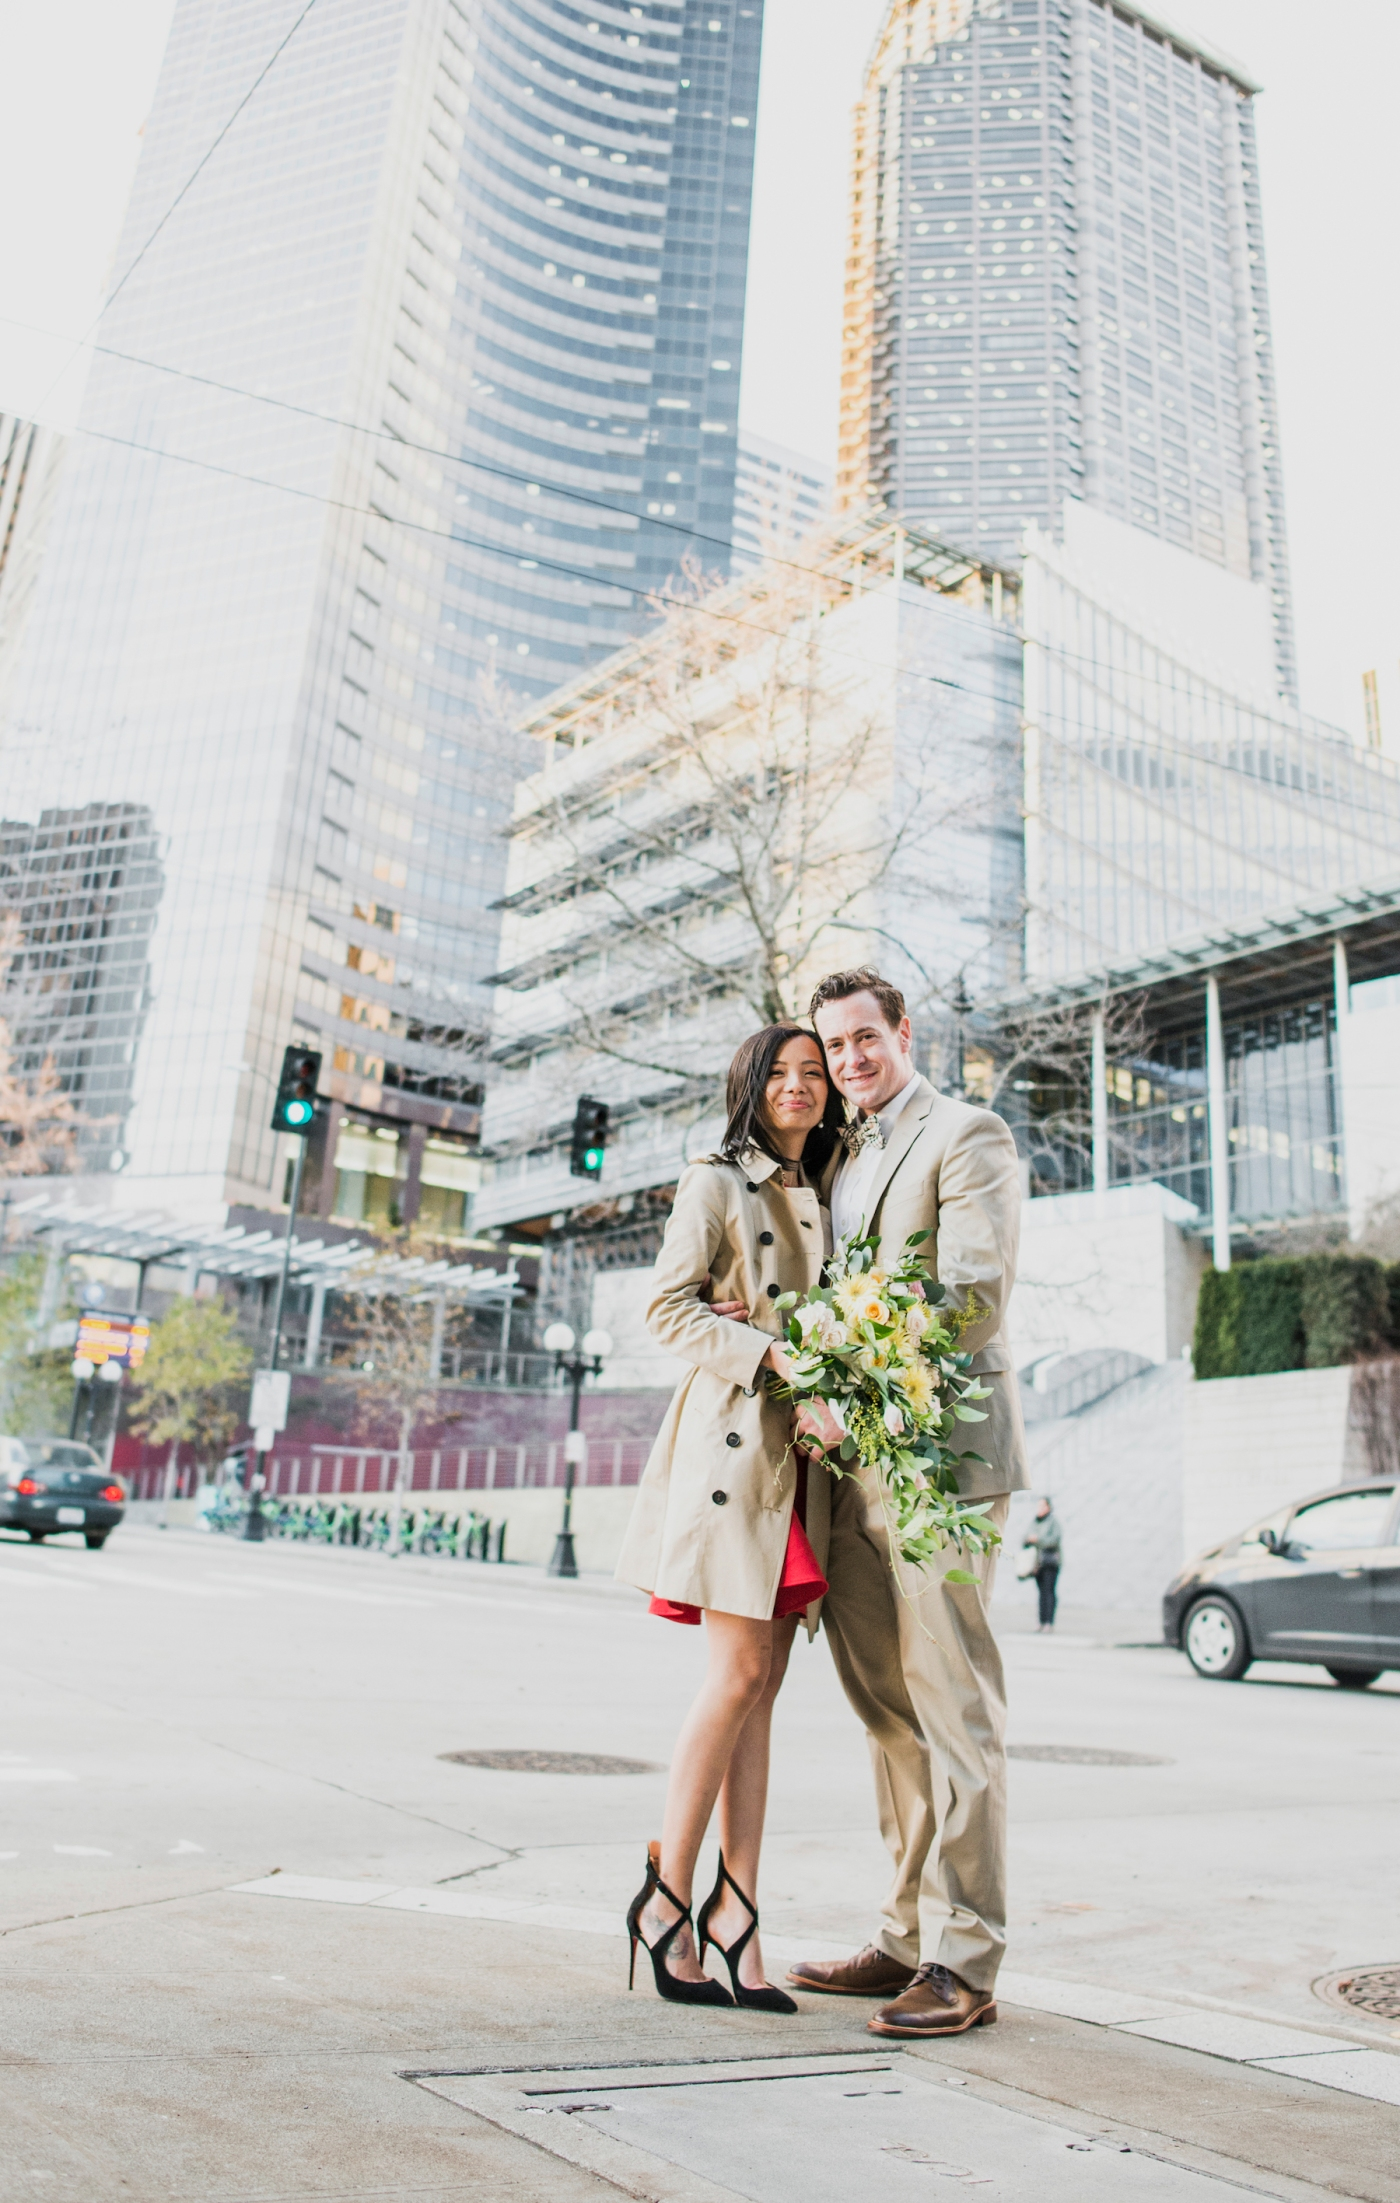 add-newphotography_by_jane_speleers_2017_seattle_court_house_wedding-dsc_9282-2